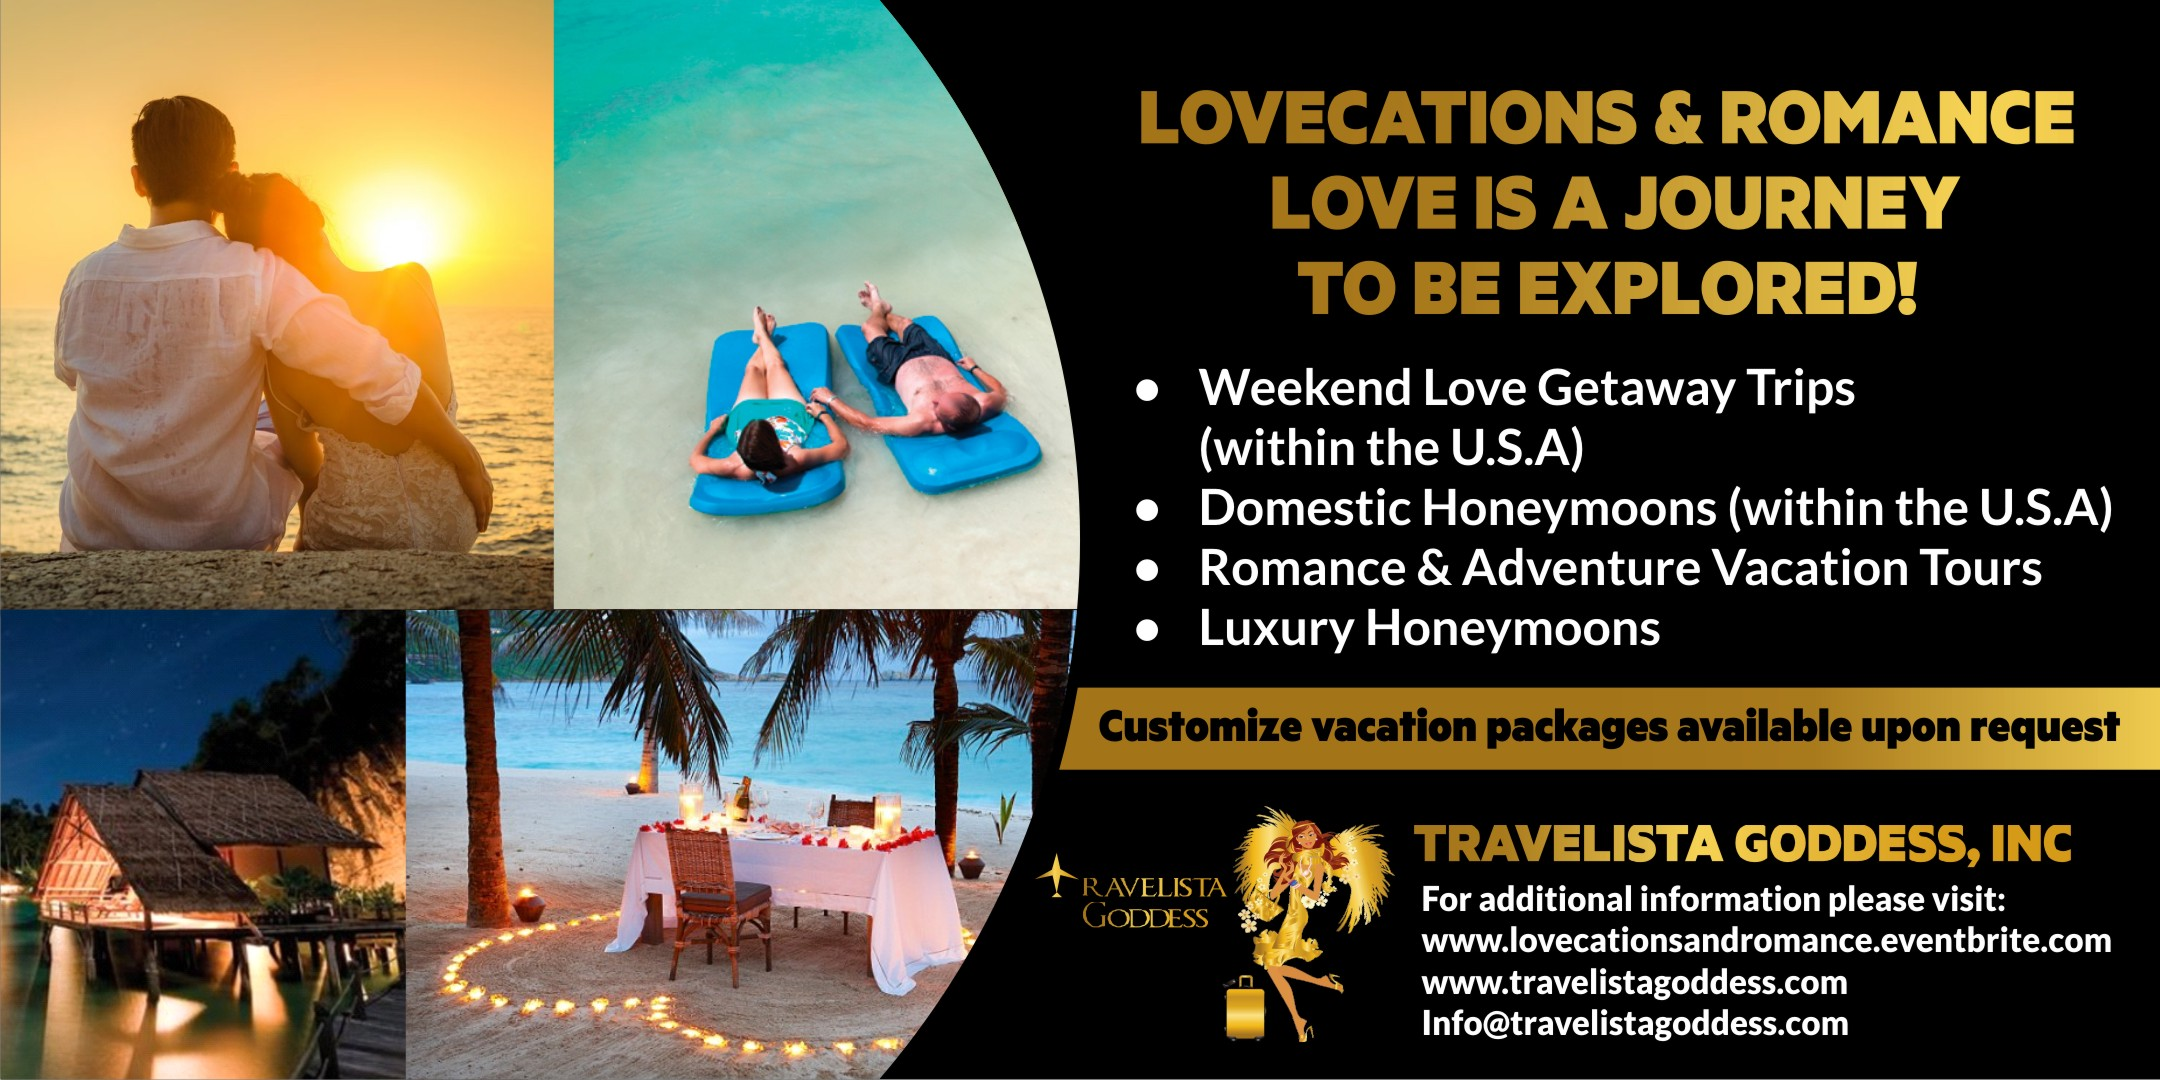 Featured Tour - To book visit:    www.lovecationsandromance.eventbrite.com